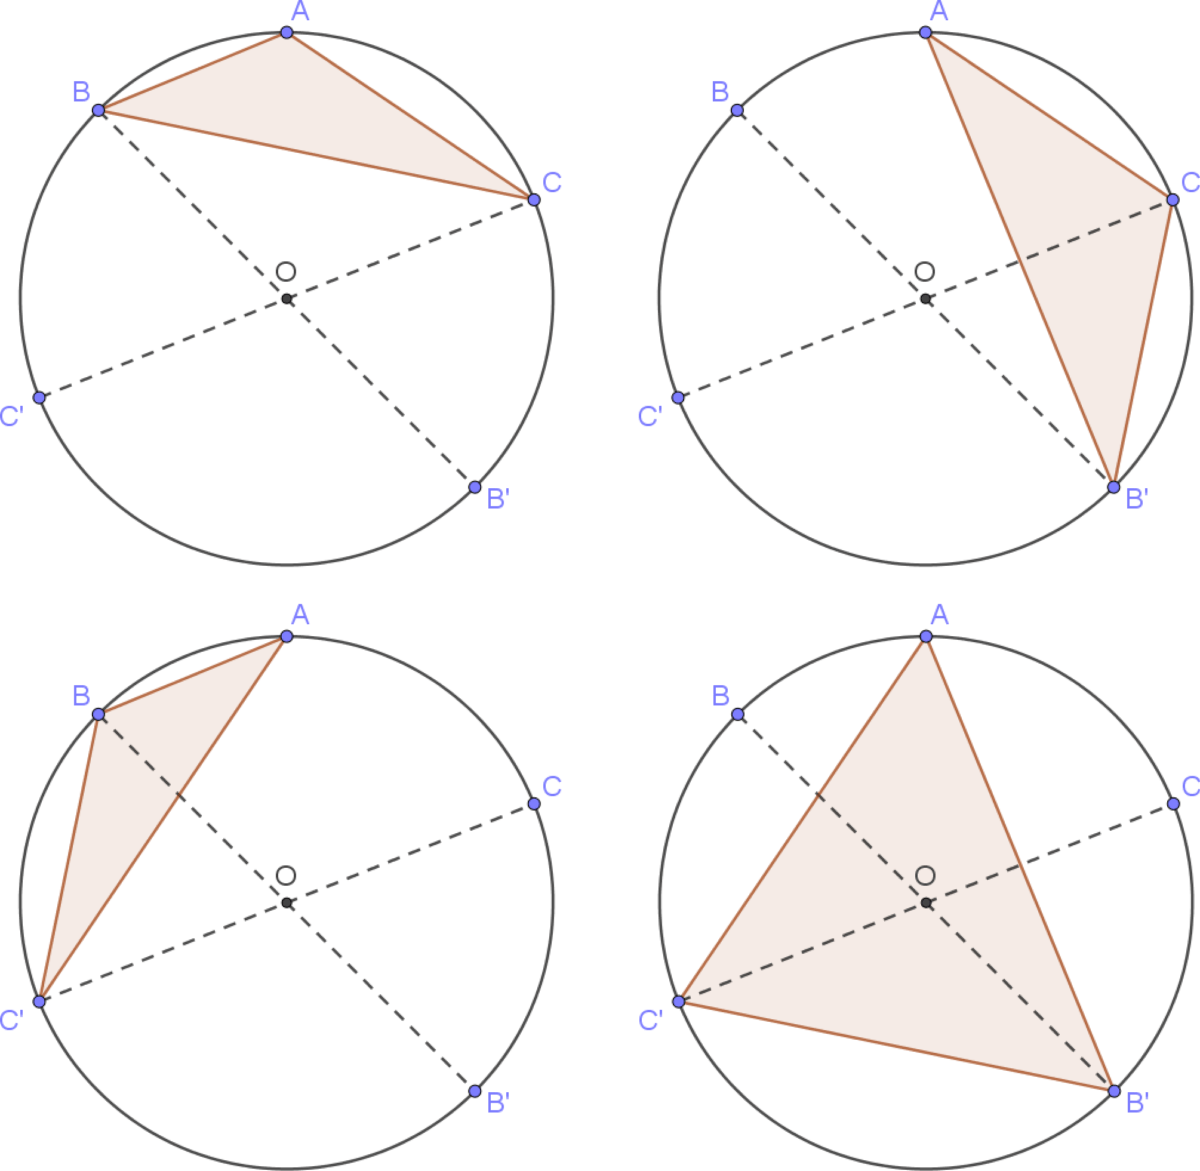 Inscribed Triangles And Tetrahedra Book Proofs